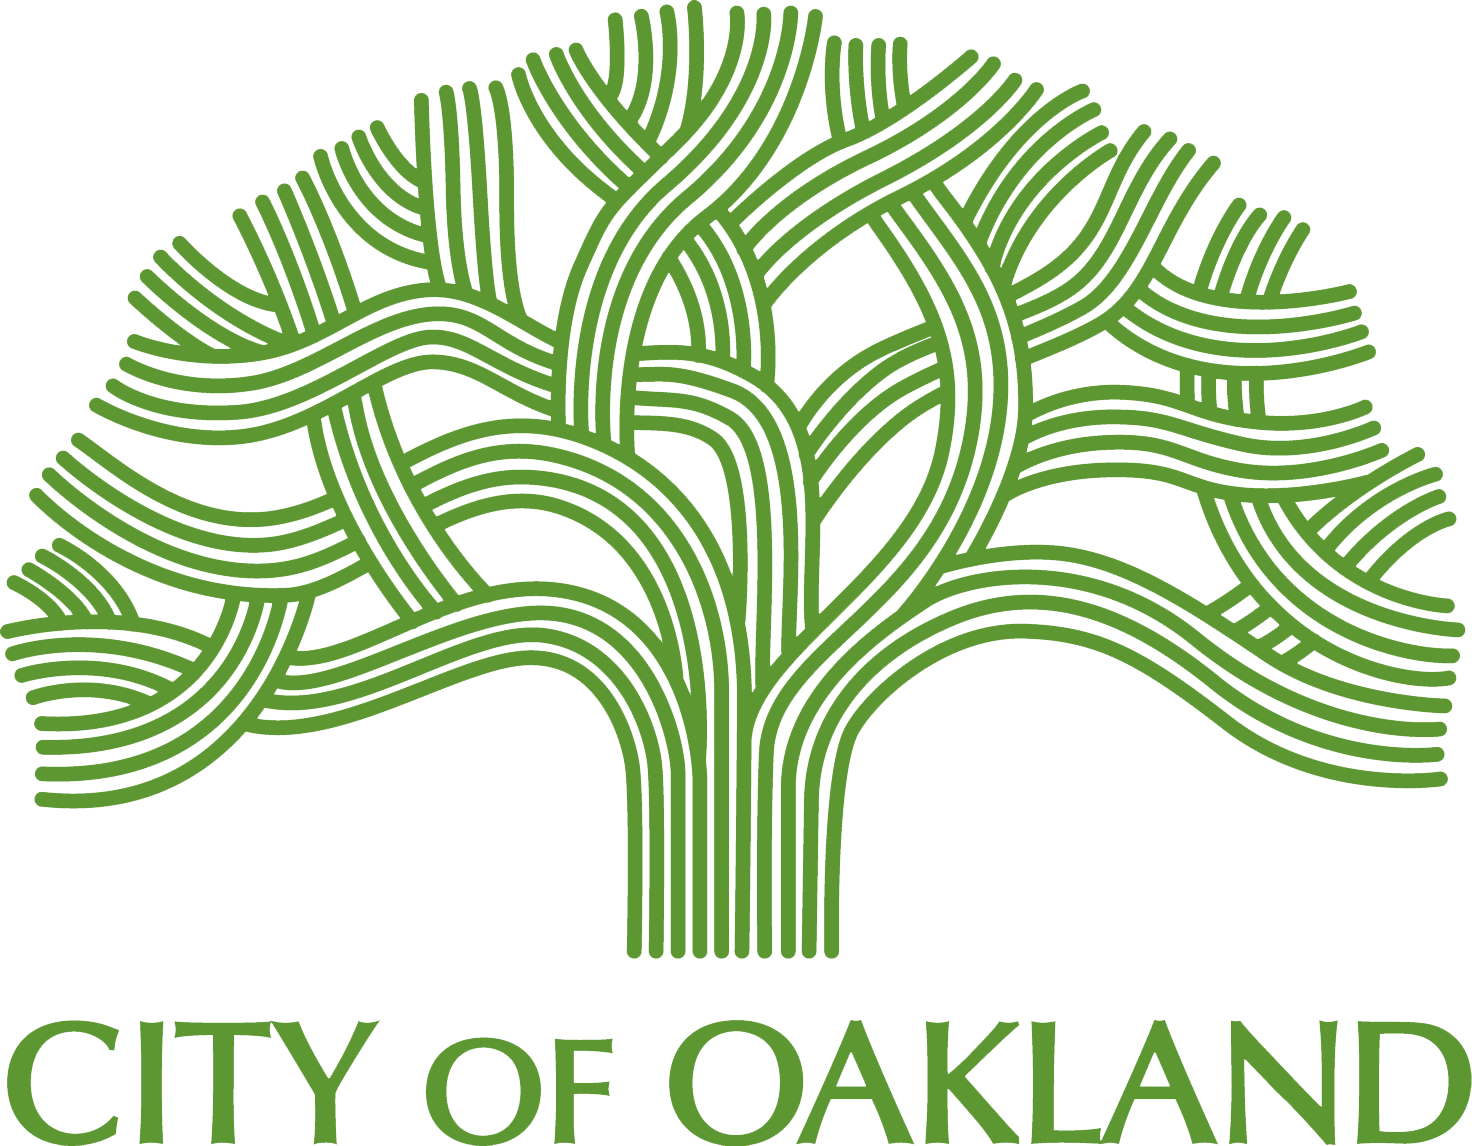 City-of-Oakland-logo-1.png